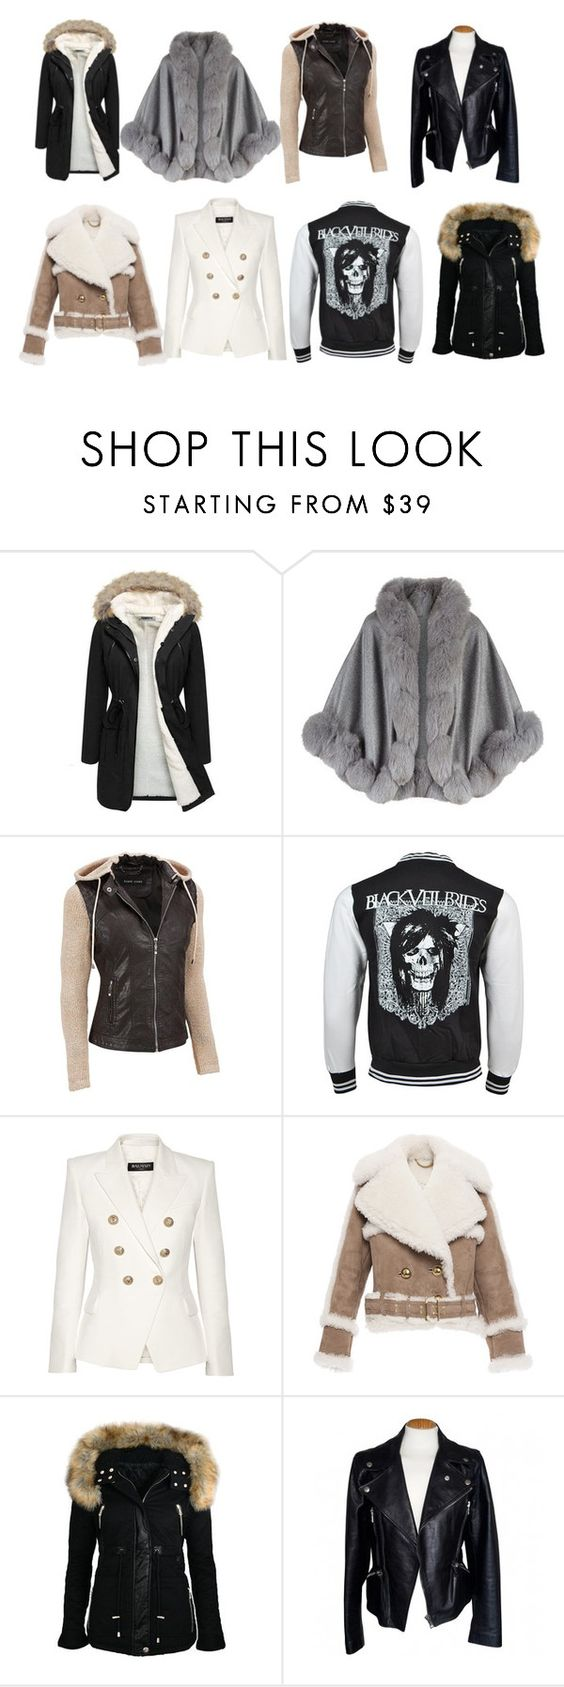 collection By: Susan W. by susan-wilson-watkins on Polyvore featuring Harrods, Balmain, Burberry, Alexander McQueen, Black Rivet and plus size clothing